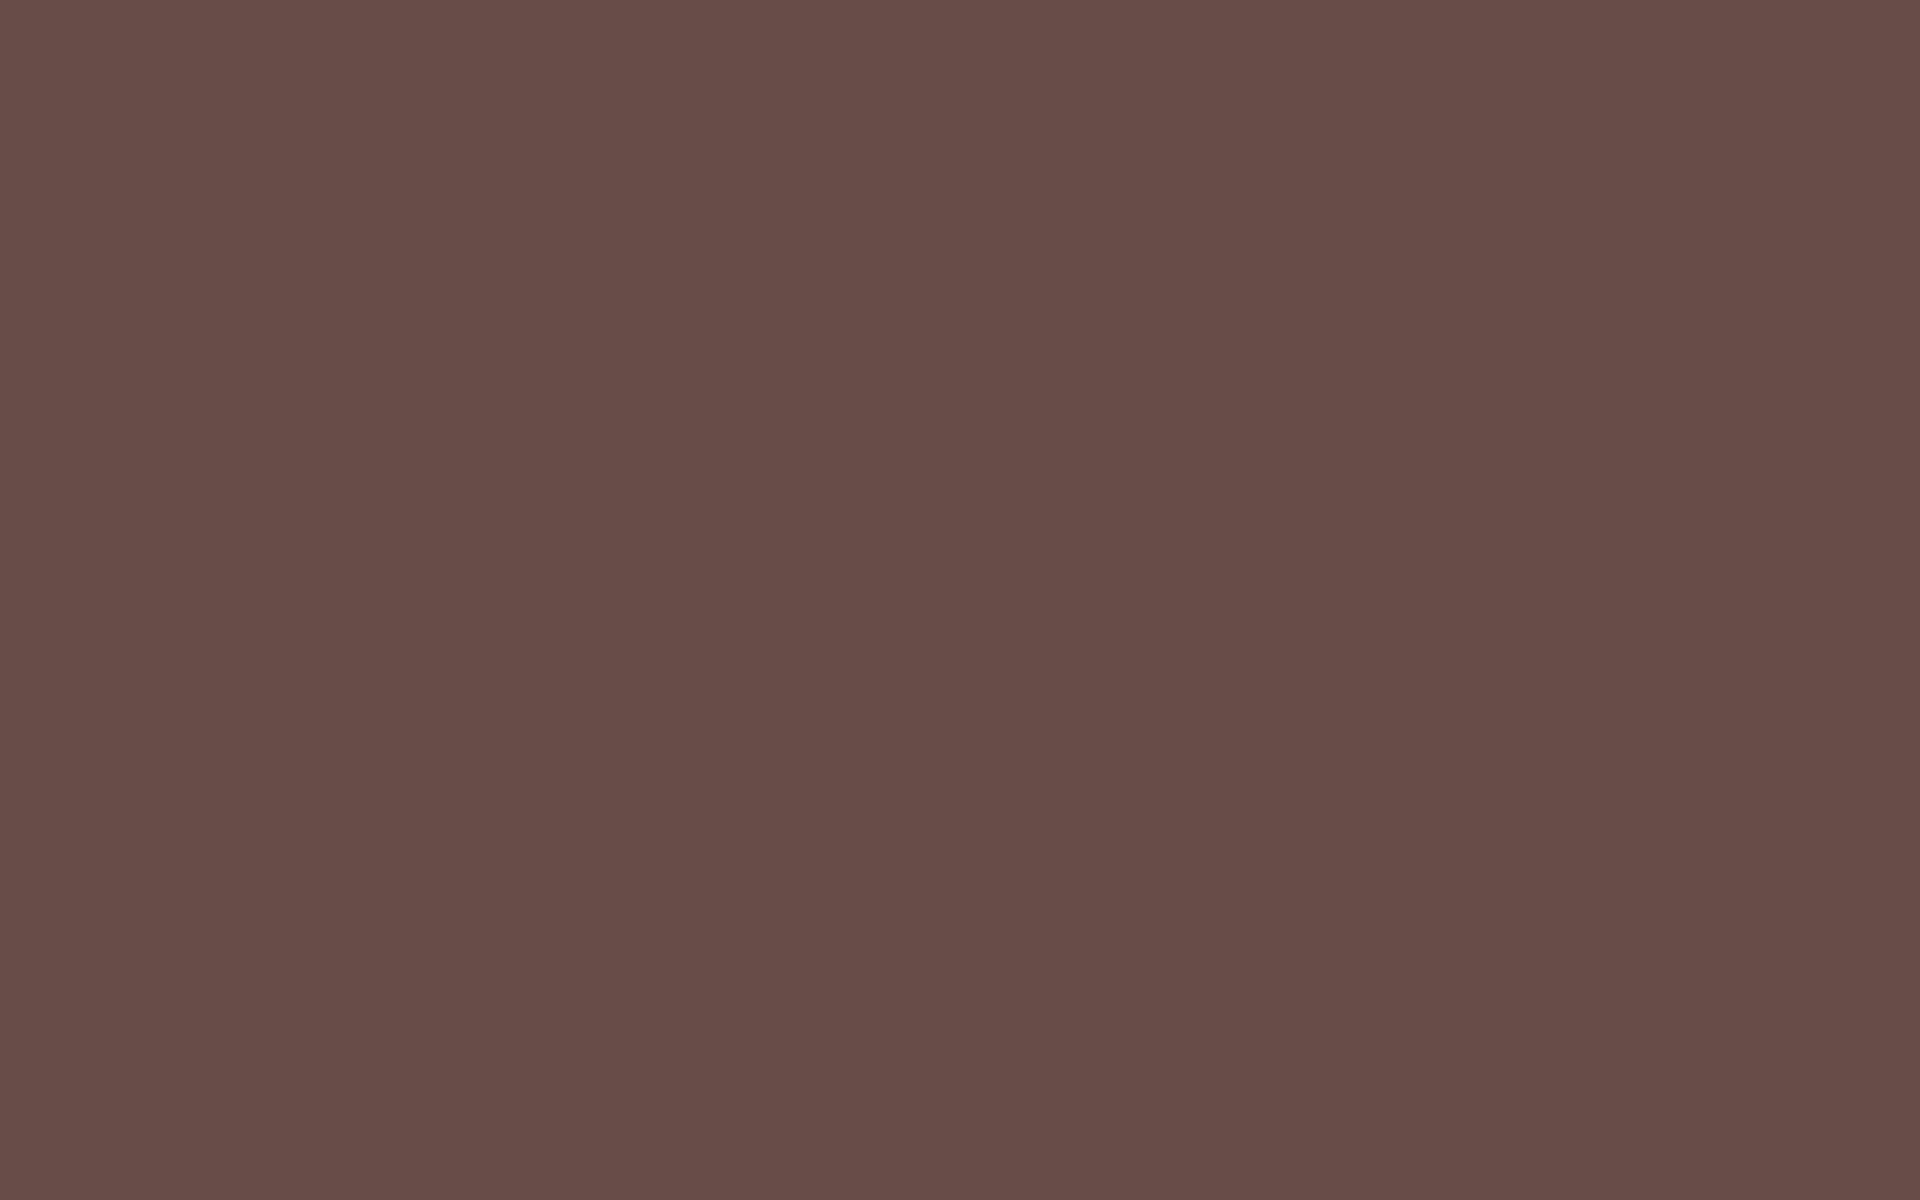 1920x1200 Medium Taupe Solid Color Background